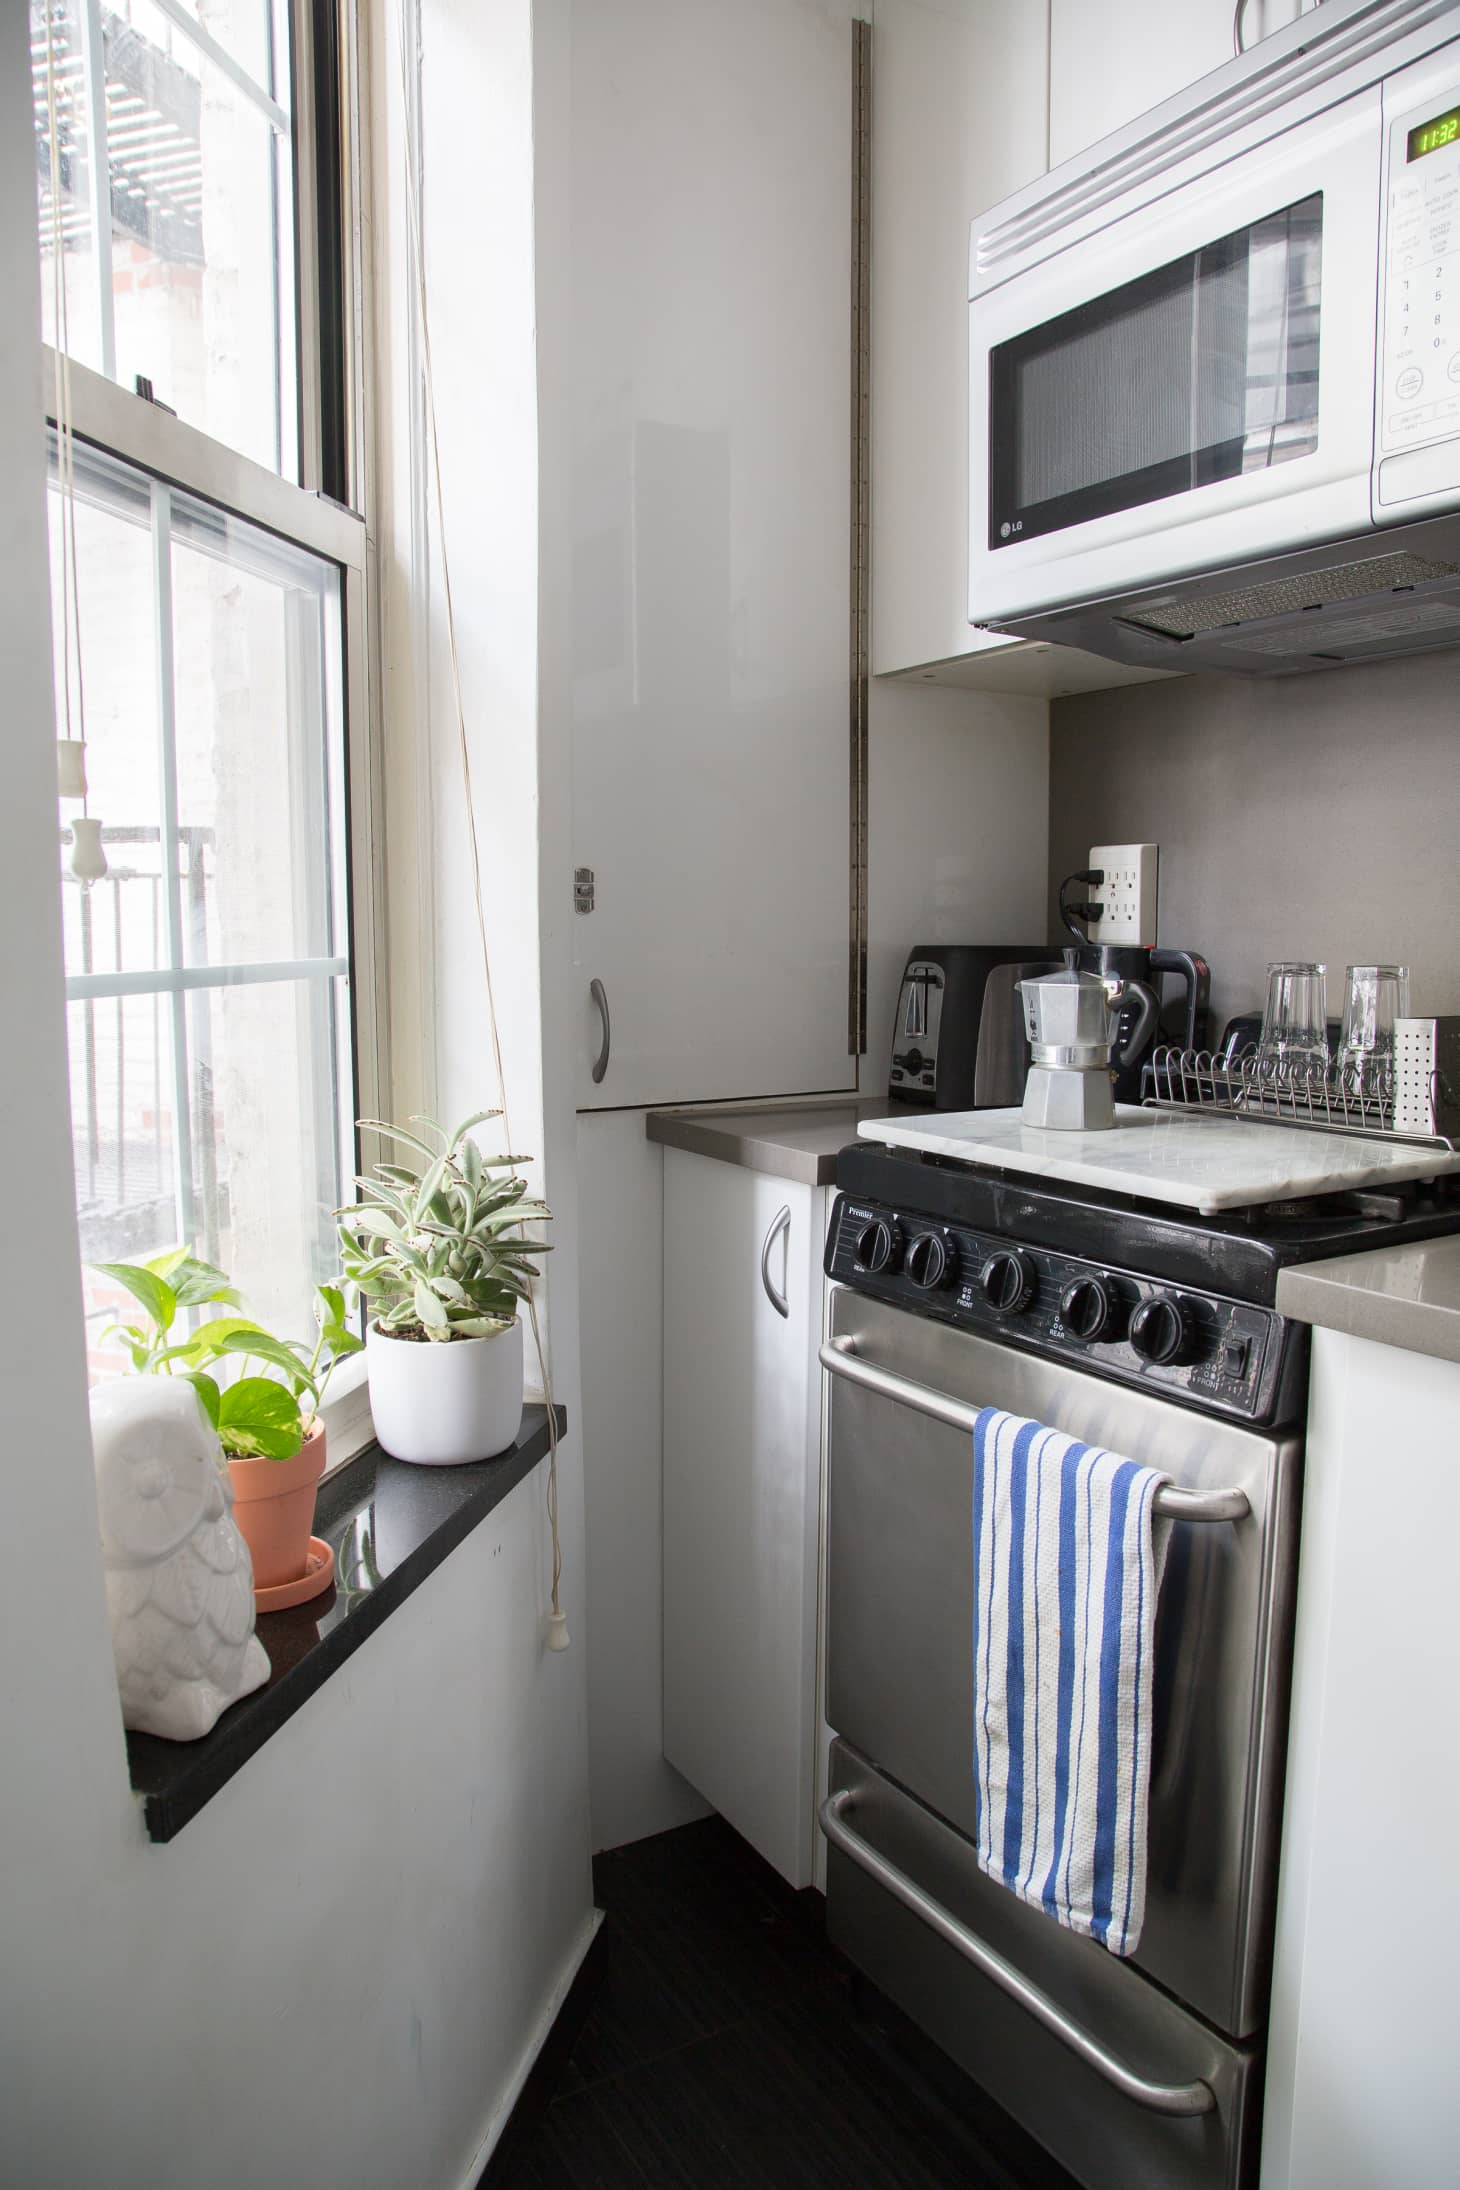 cozy kitchen with plants